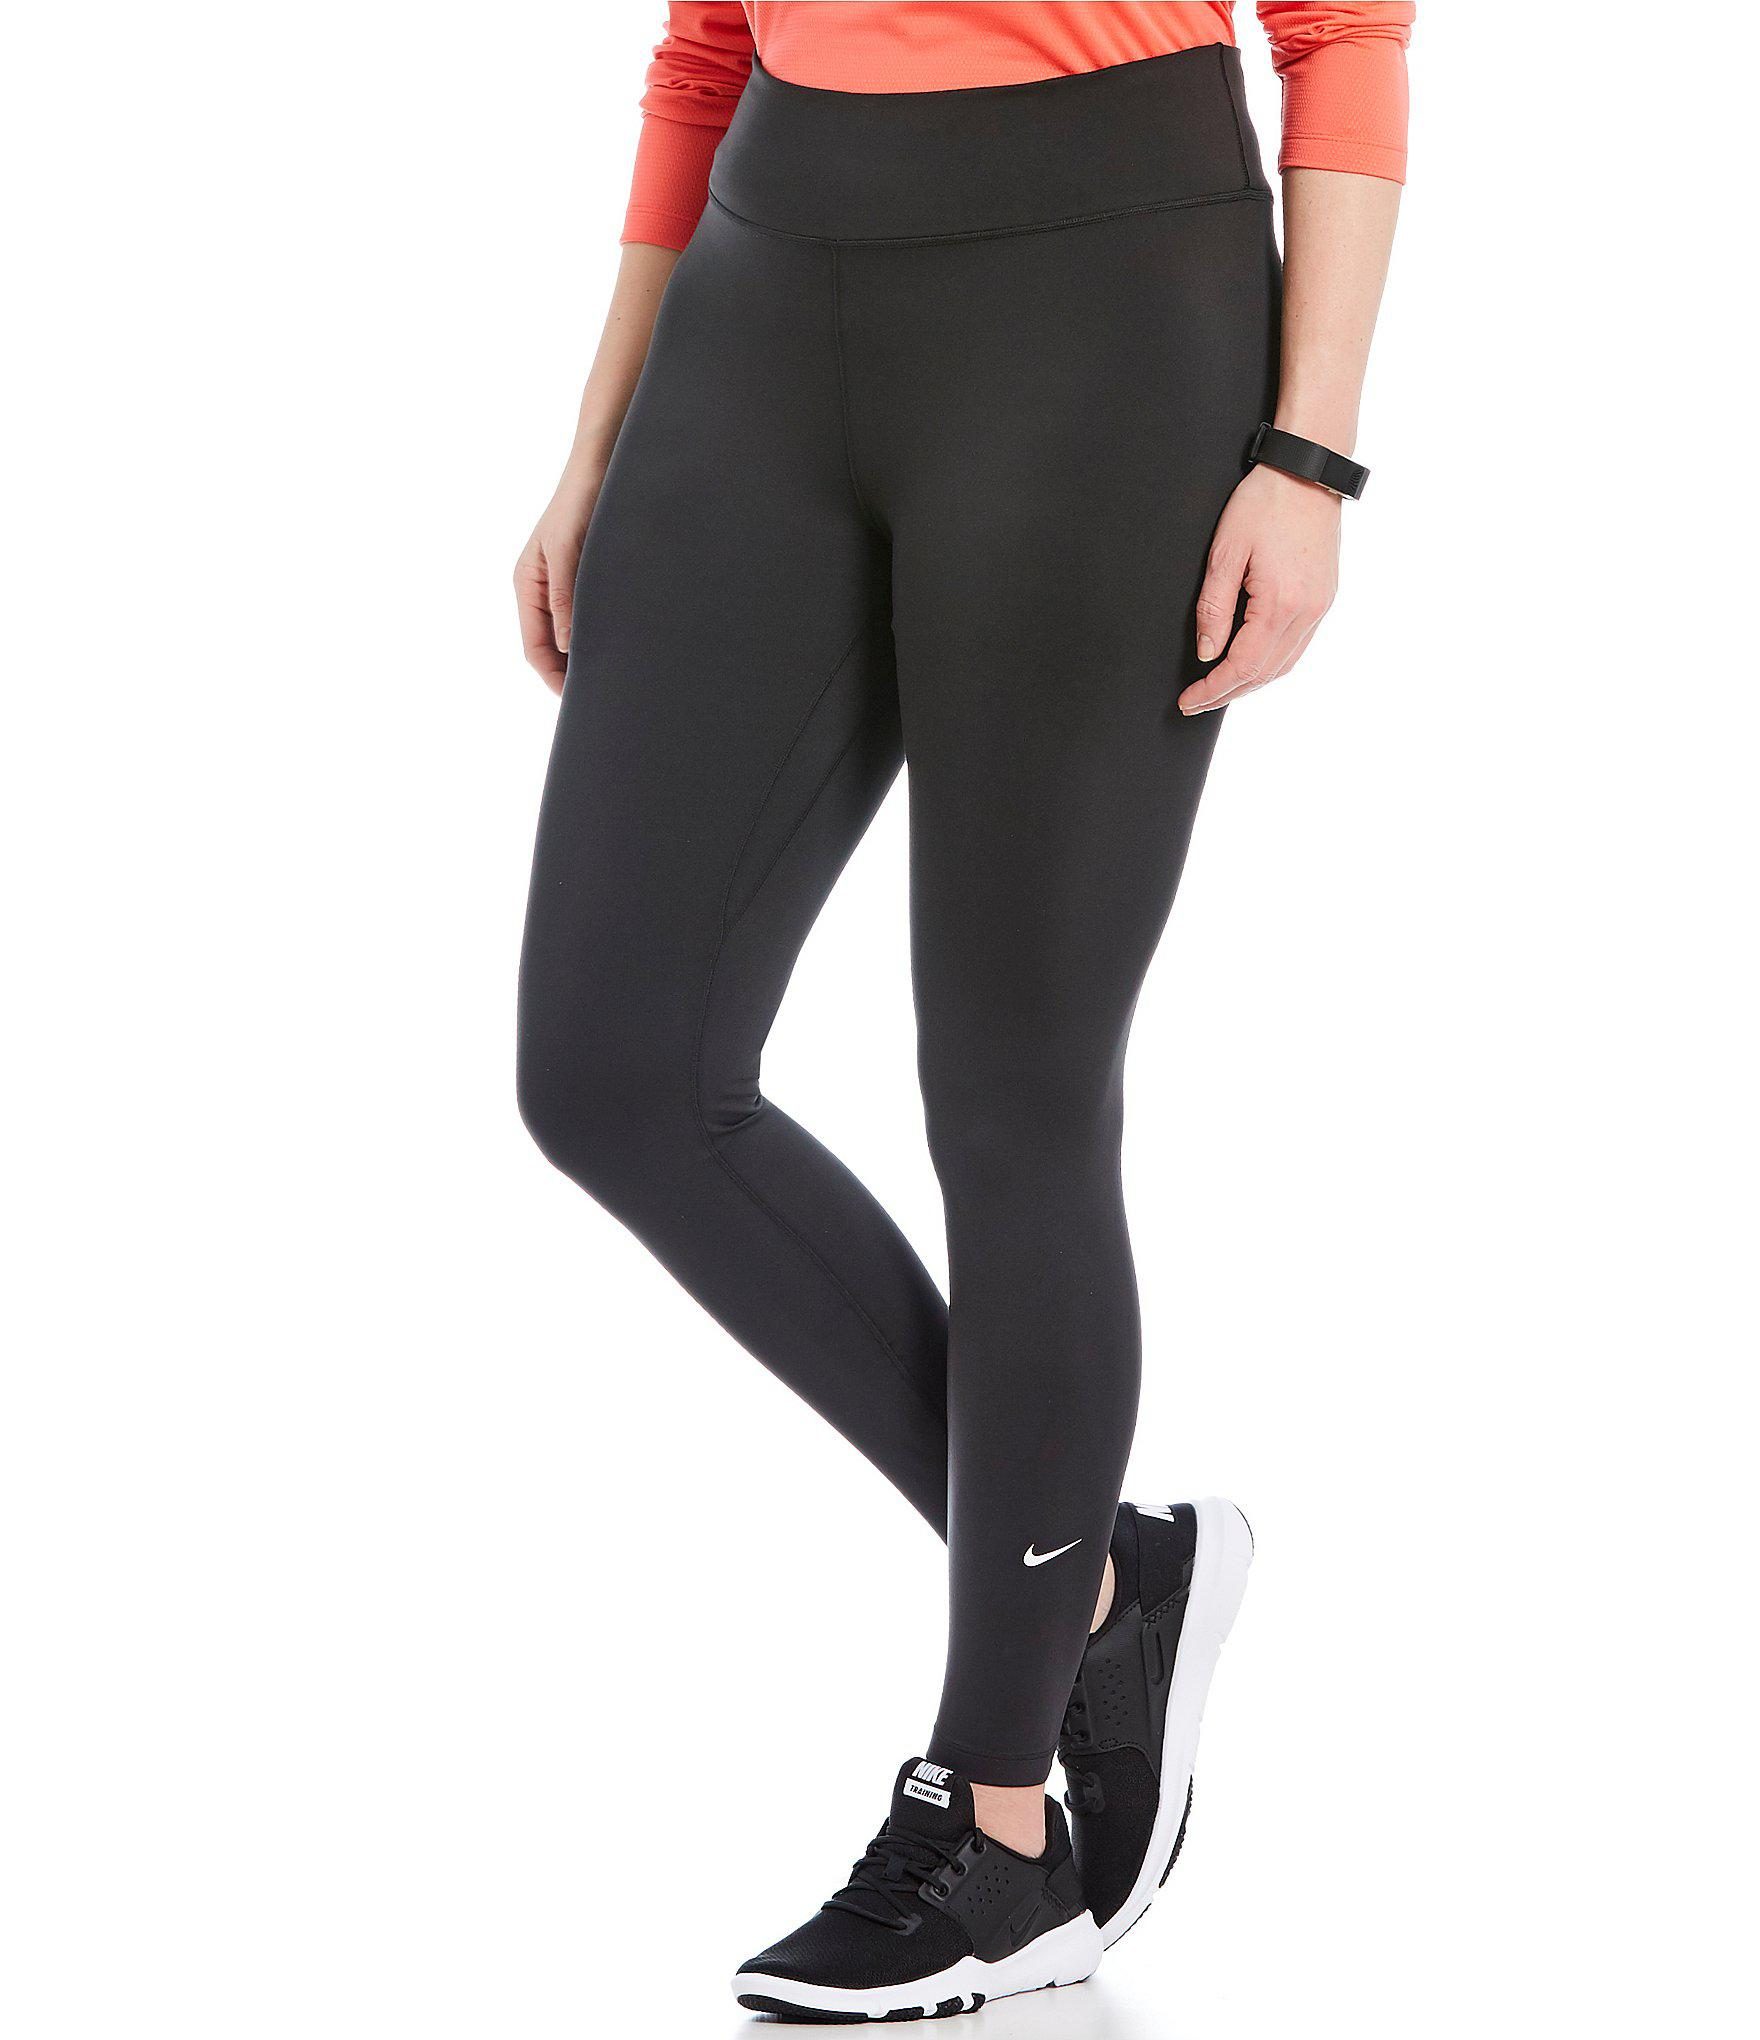 4e27e7119a3b6 Lyst - Nike Plus All-in Training Tights in Black